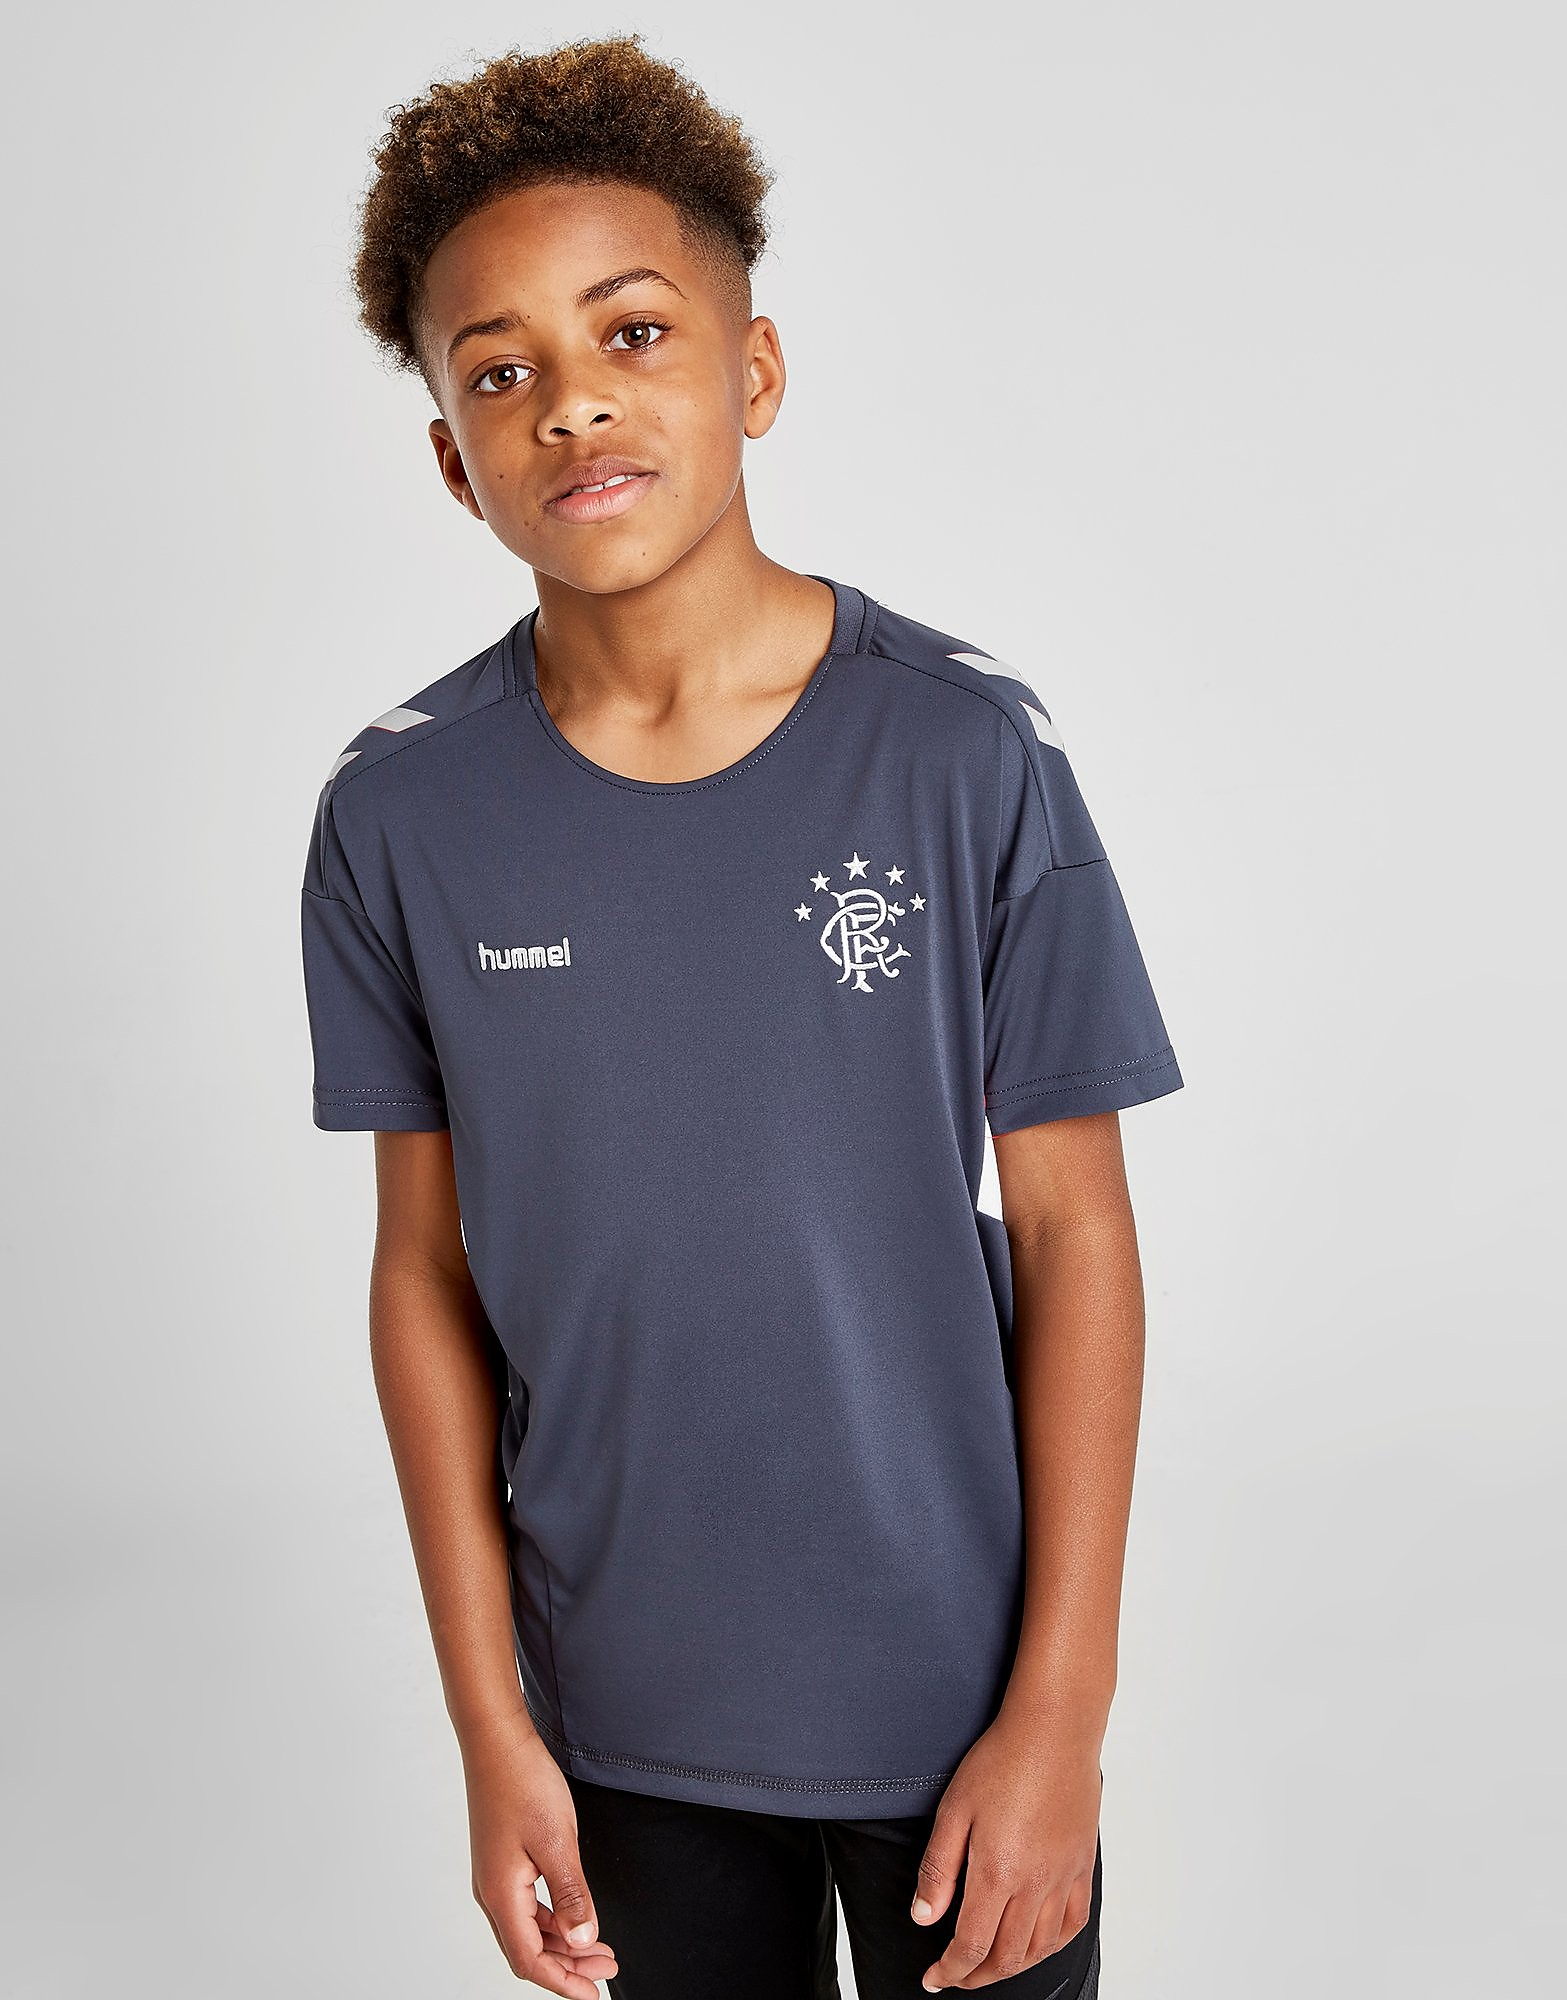 Hummel Rangers FC Match Shirt Junior PRE ORDER - Zwart - Kind